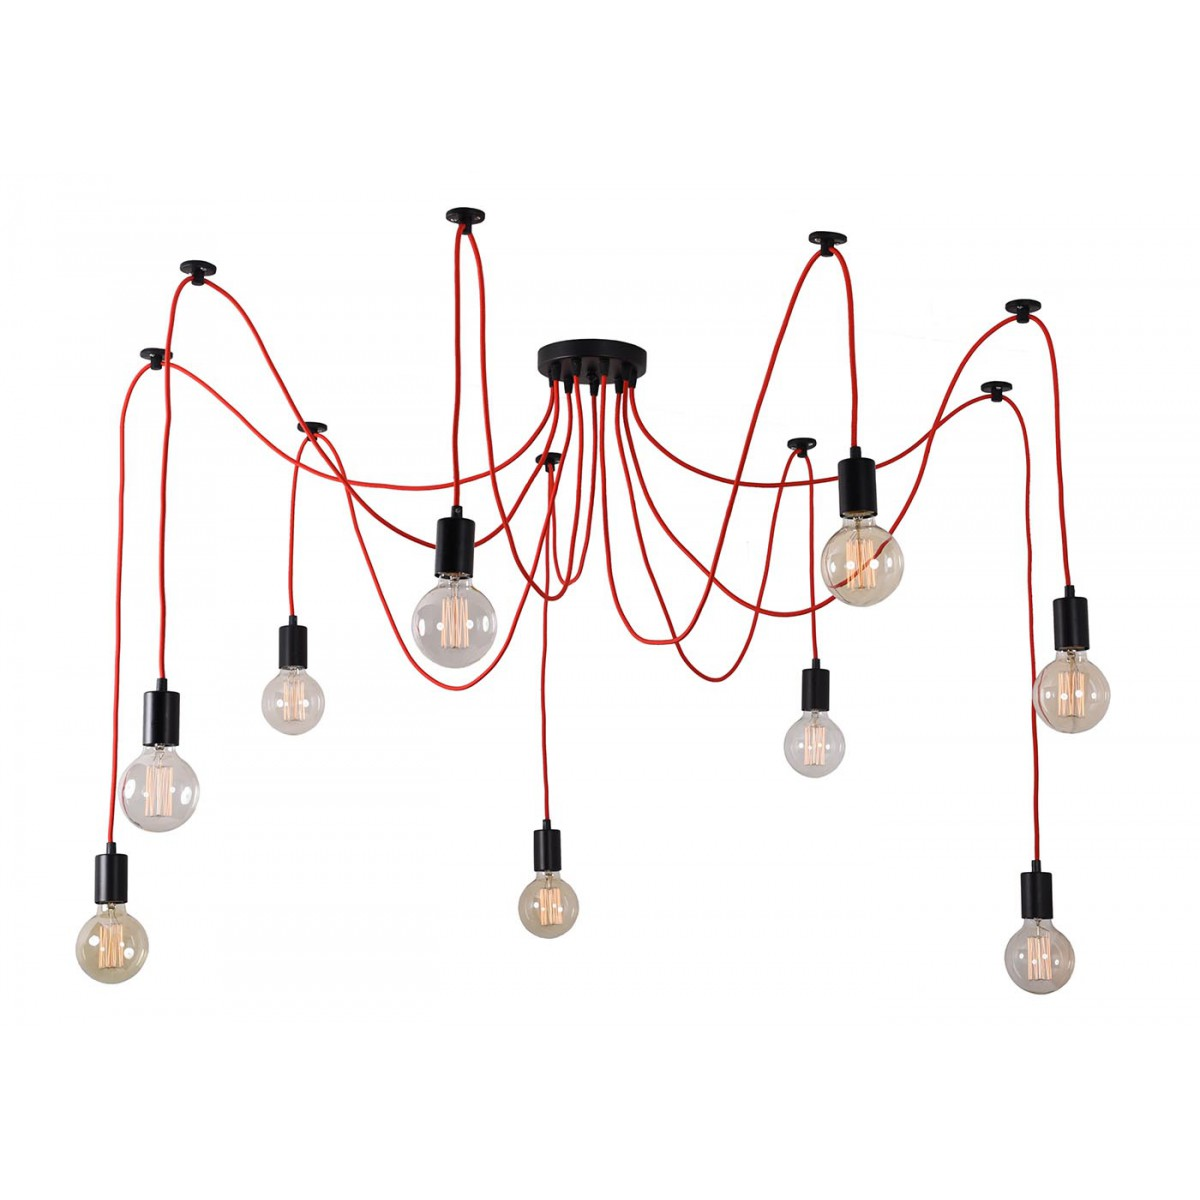 Suspension moderne avec ampoules d coratives filaments for Suspension contemporaine